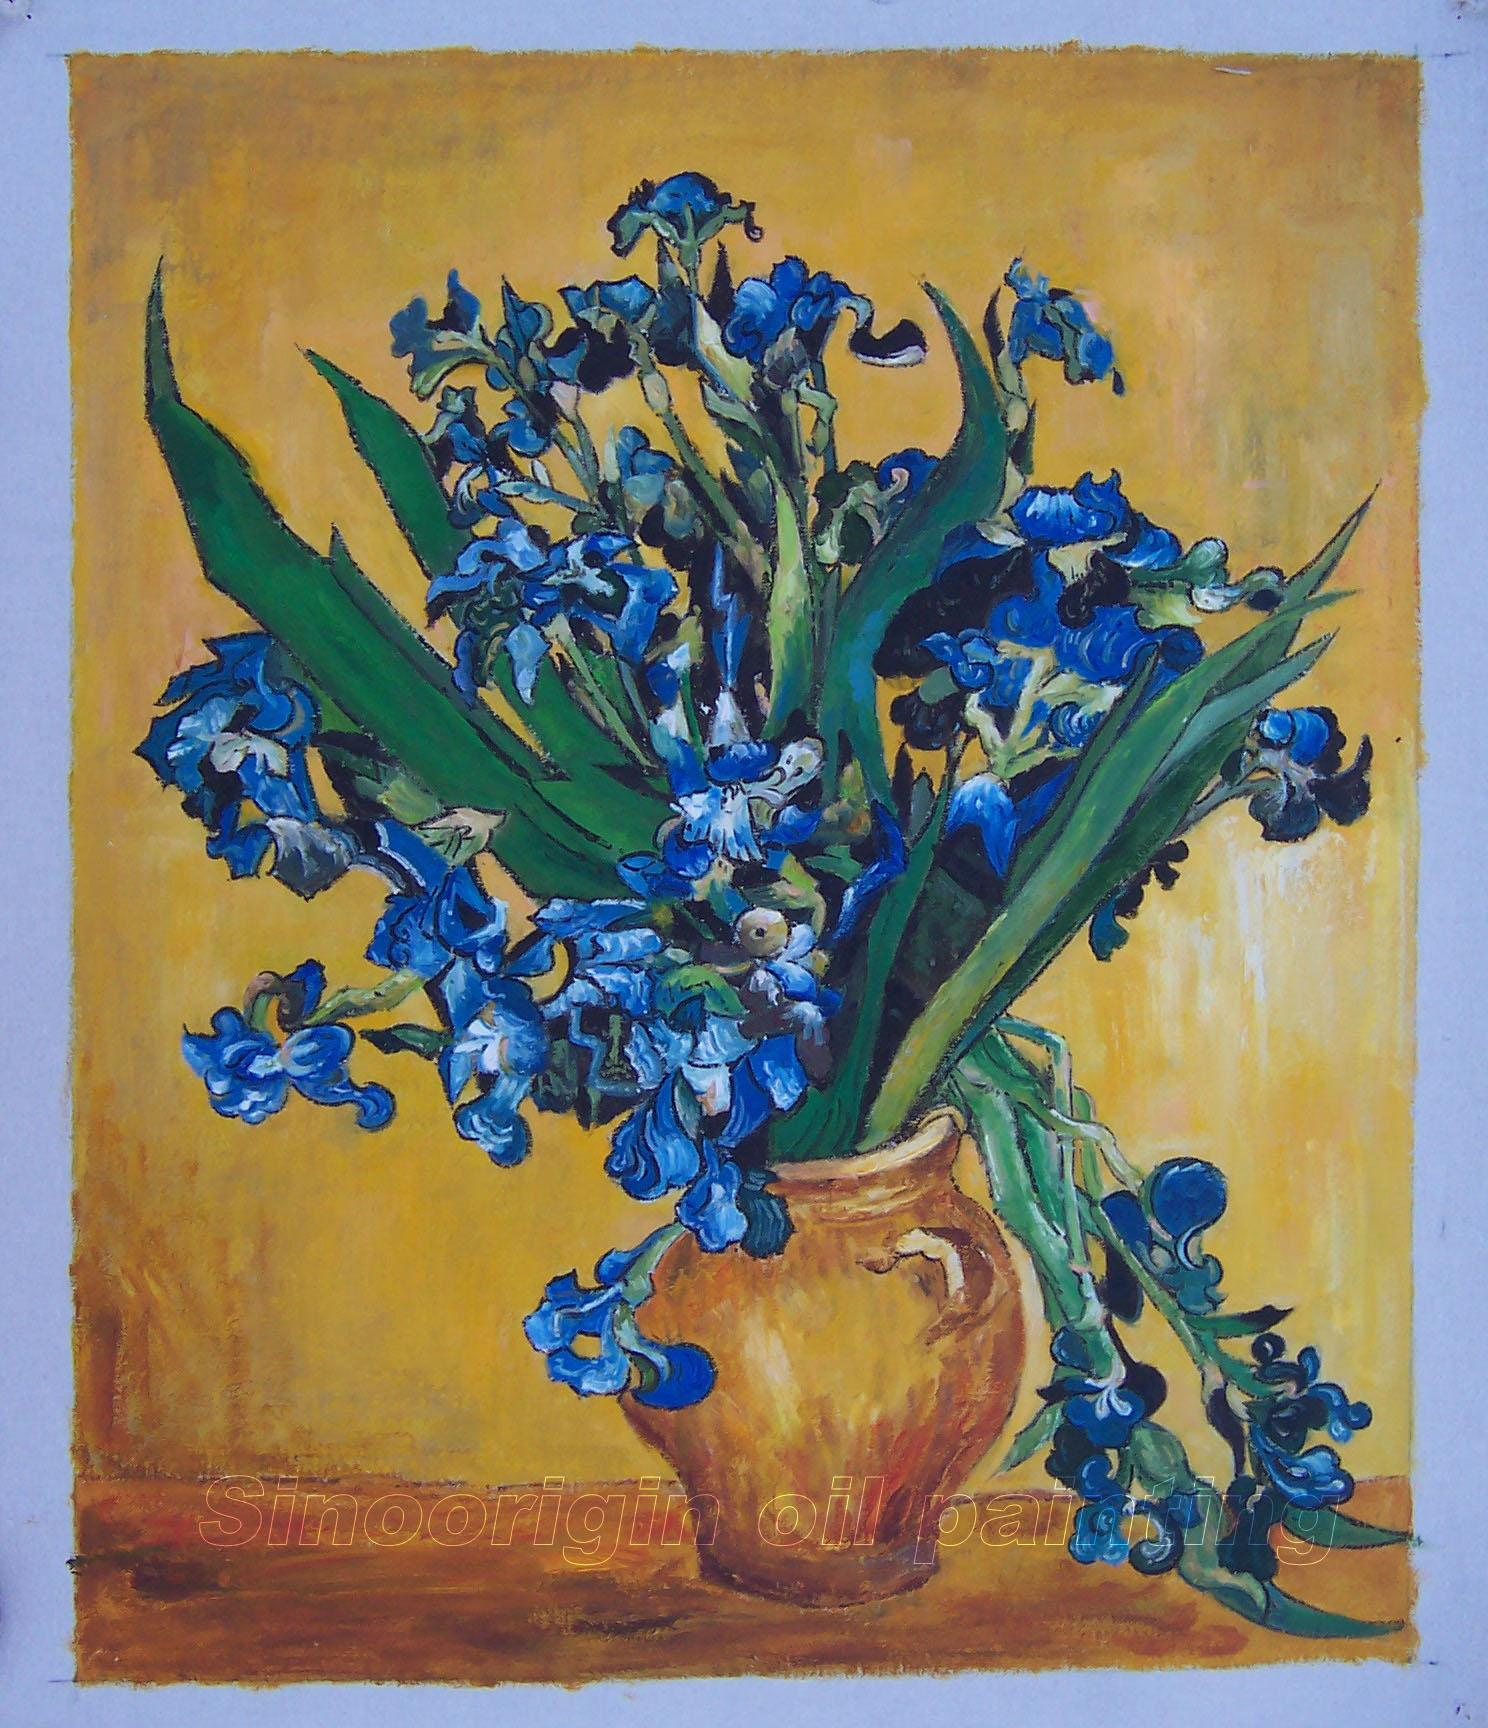 Vincent van gogh oil painting still life vase with irises against a yellow background reviewsmspy